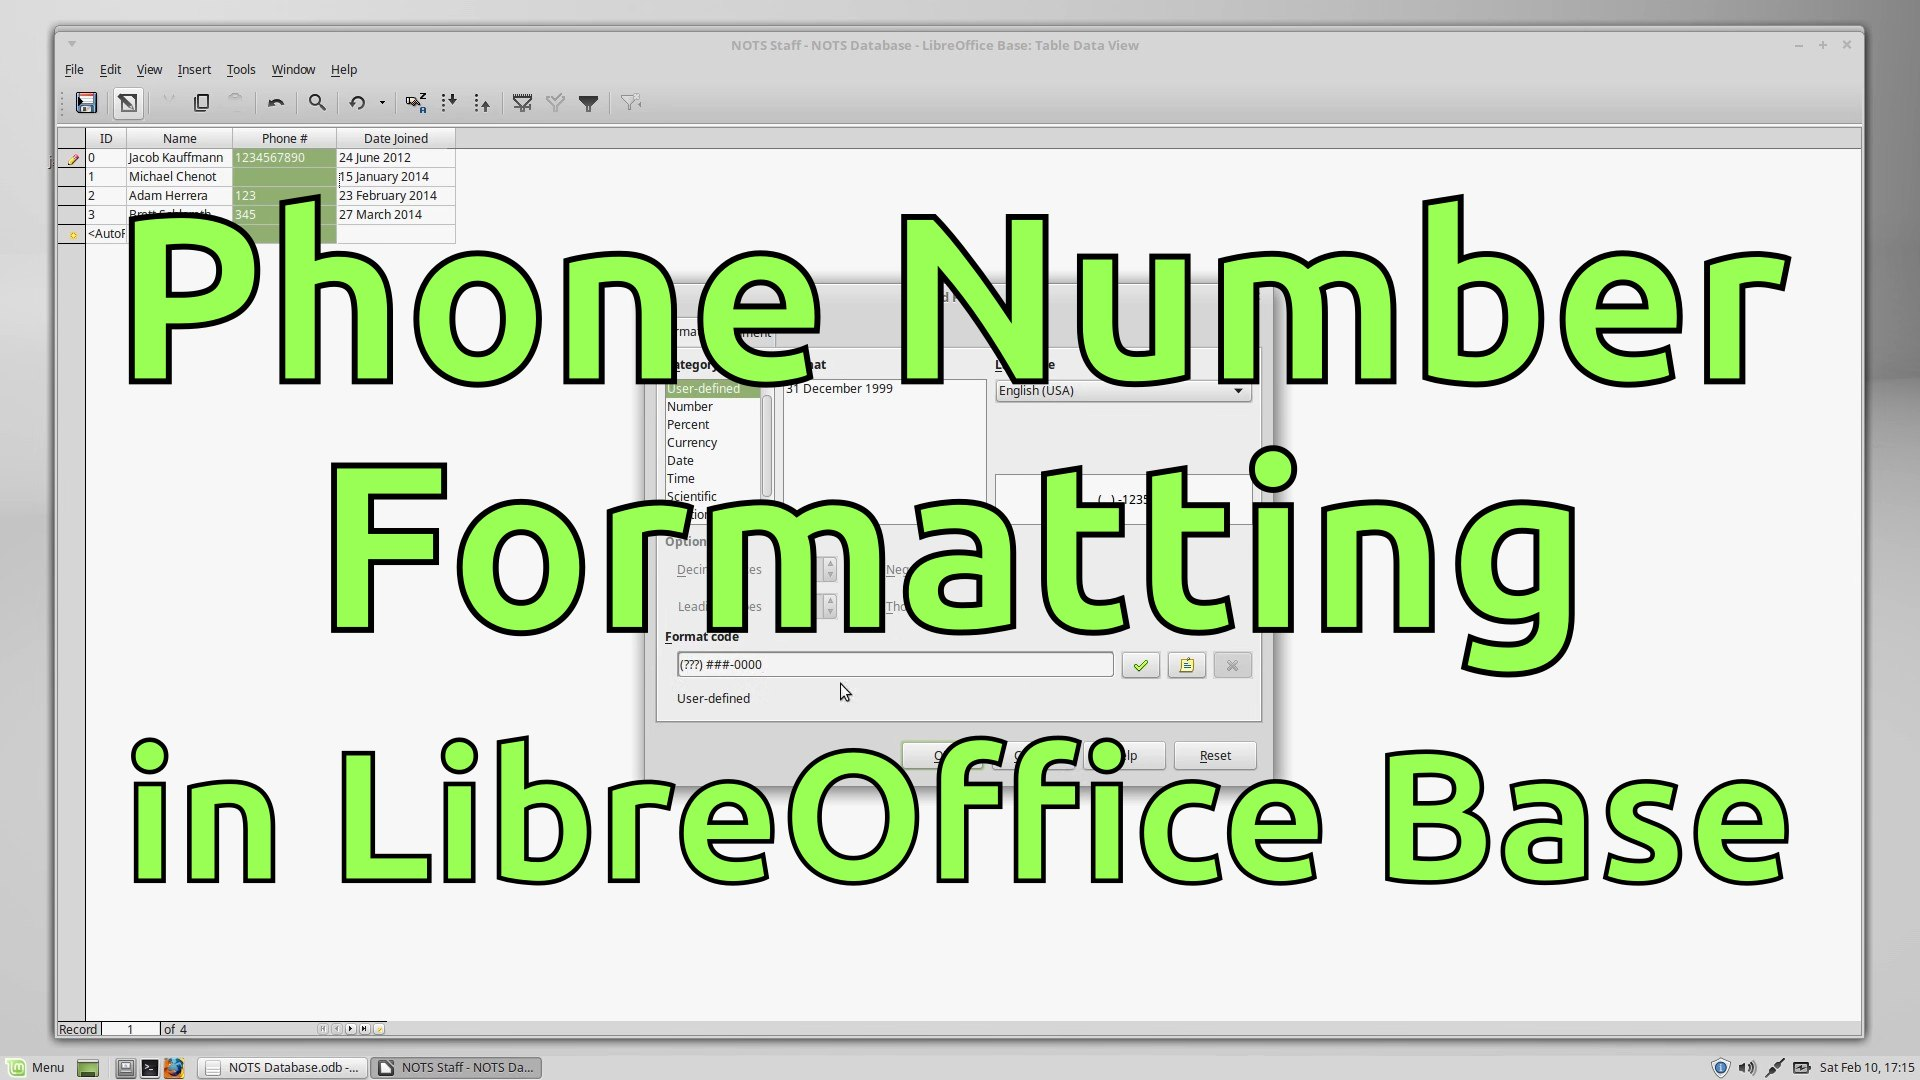 Formatting Phone Numbers - LibreOffice Base